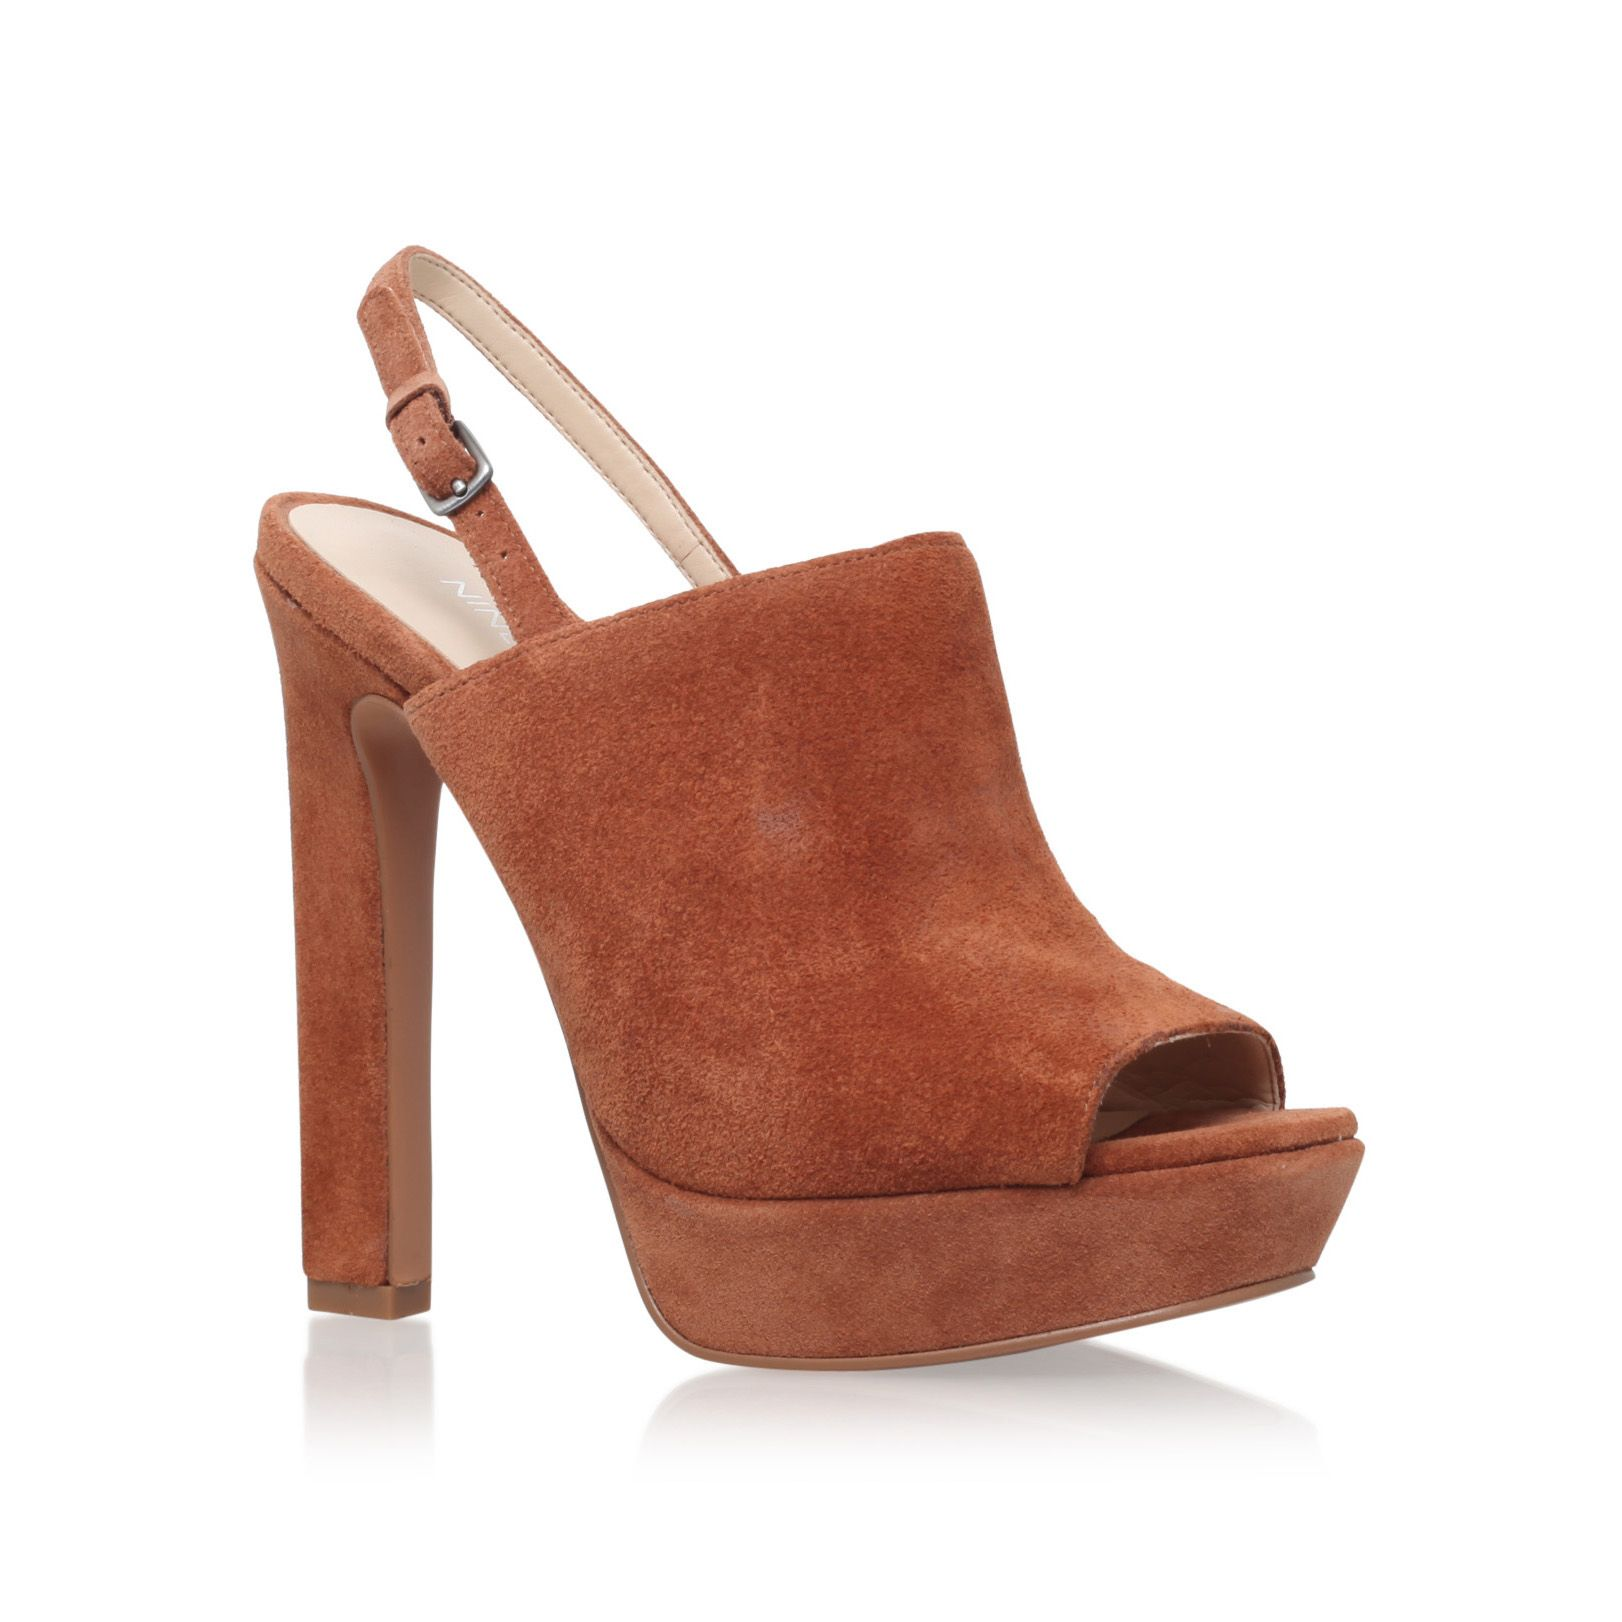 Nine West Nine West Lailah high heel slingback shoes, Tan